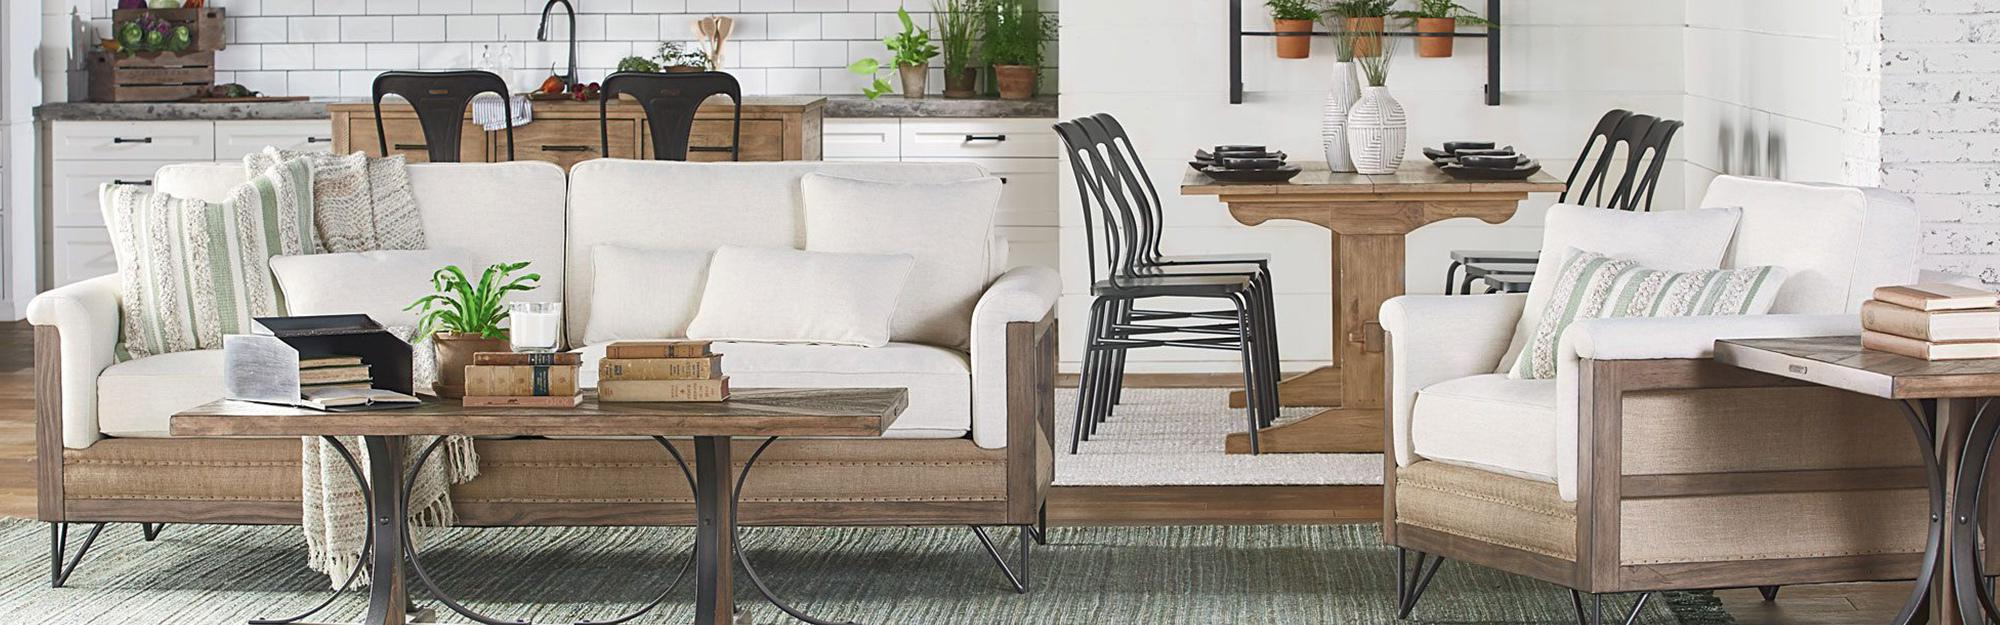 Famous Magnolia Home Homestead 3 Piece Sectionals By Joanna Gaines Regarding Magnolia Home Living Room (Gallery 7 of 20)